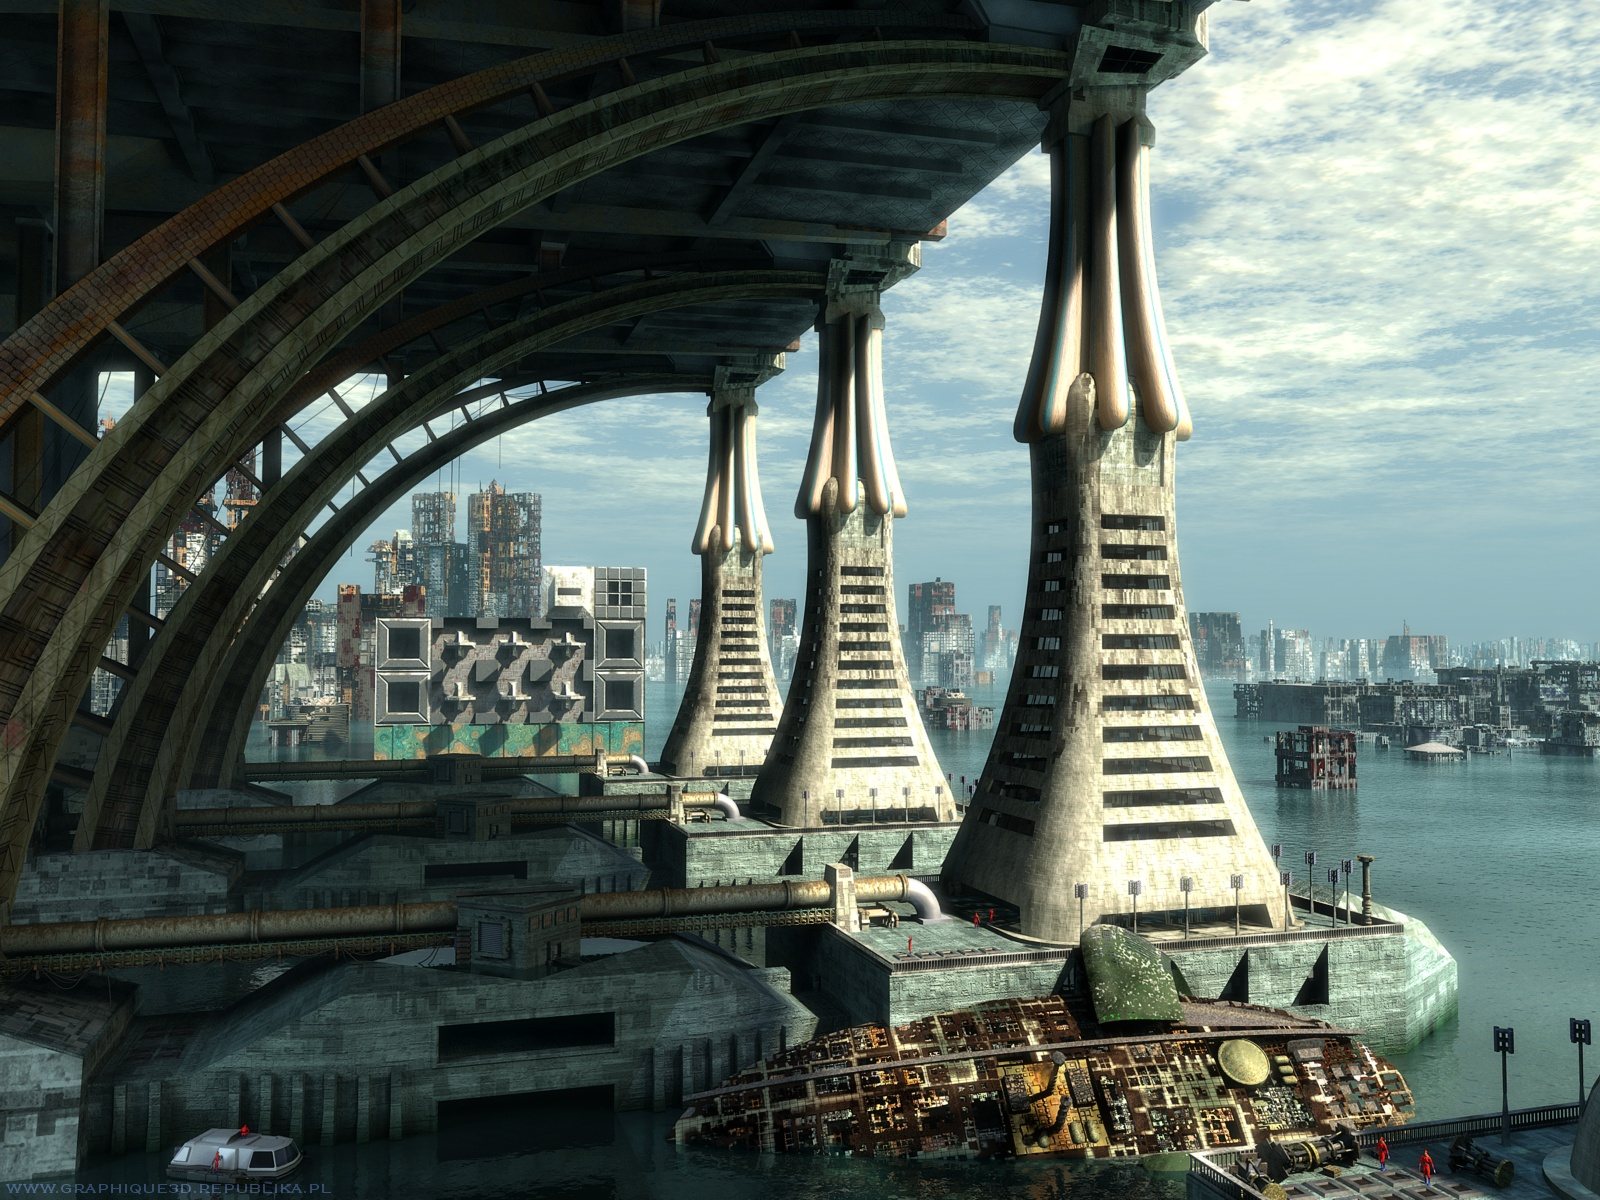 Free download Science Fiction Sci Fi 3d And Digital Art